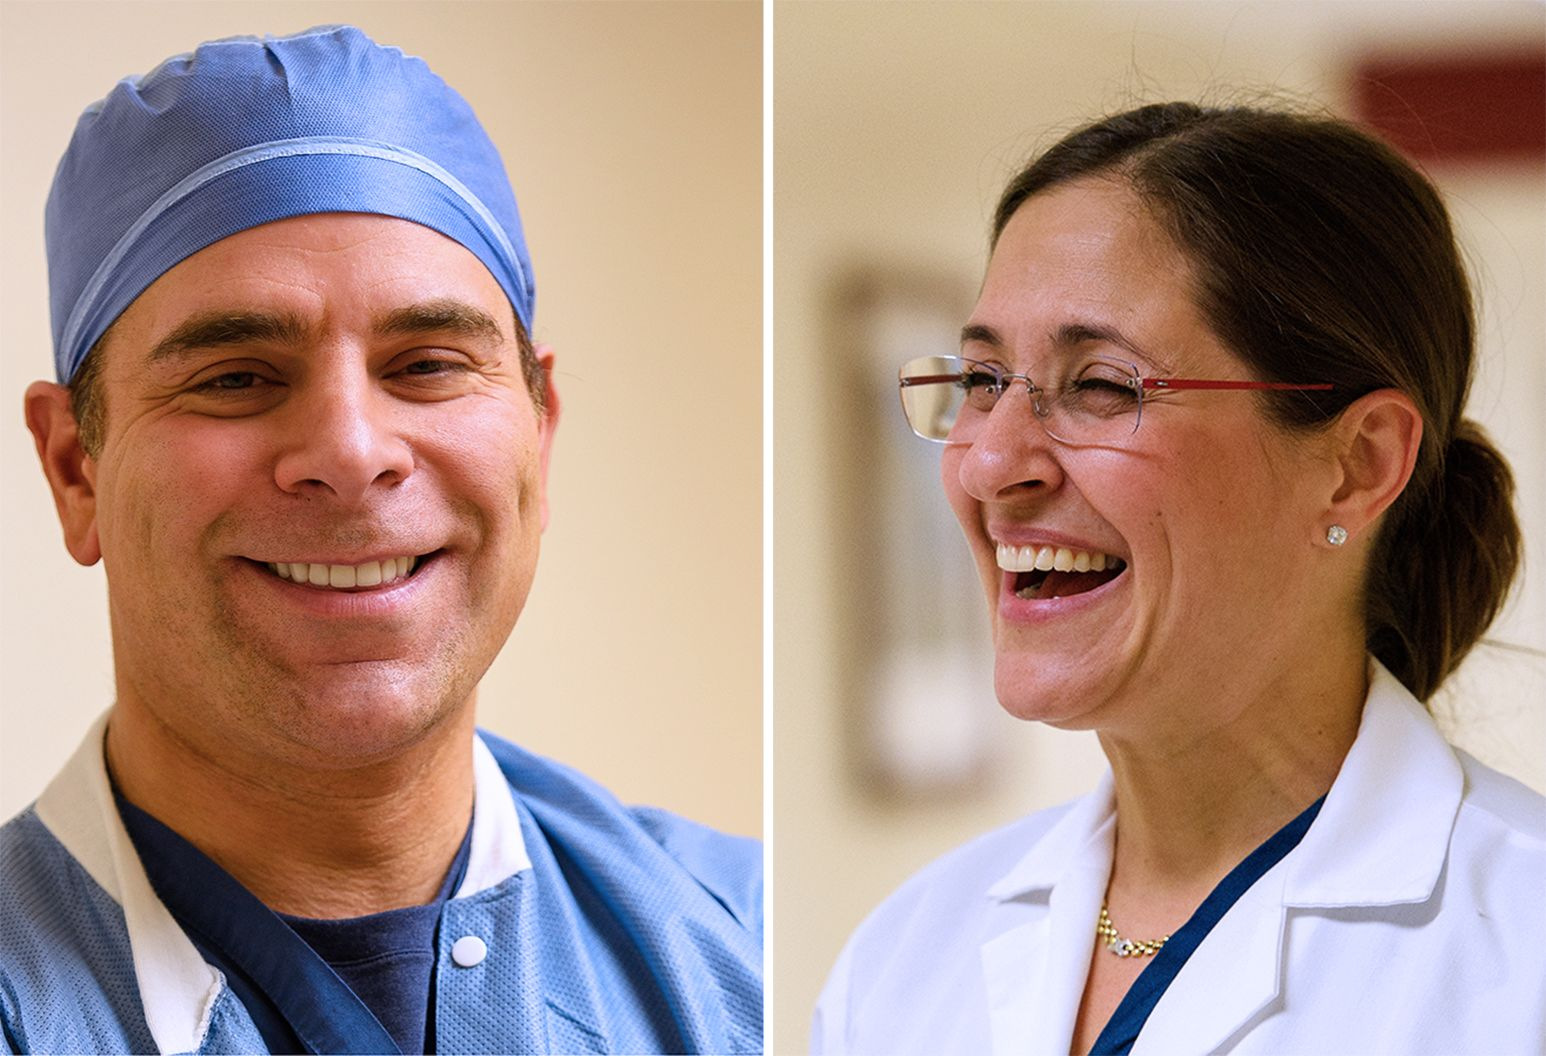 There are two images side by side. On the left is a man in surgical scrubs and a surgical cap. On the left is a smiling woman with glasses and a white lab coat.